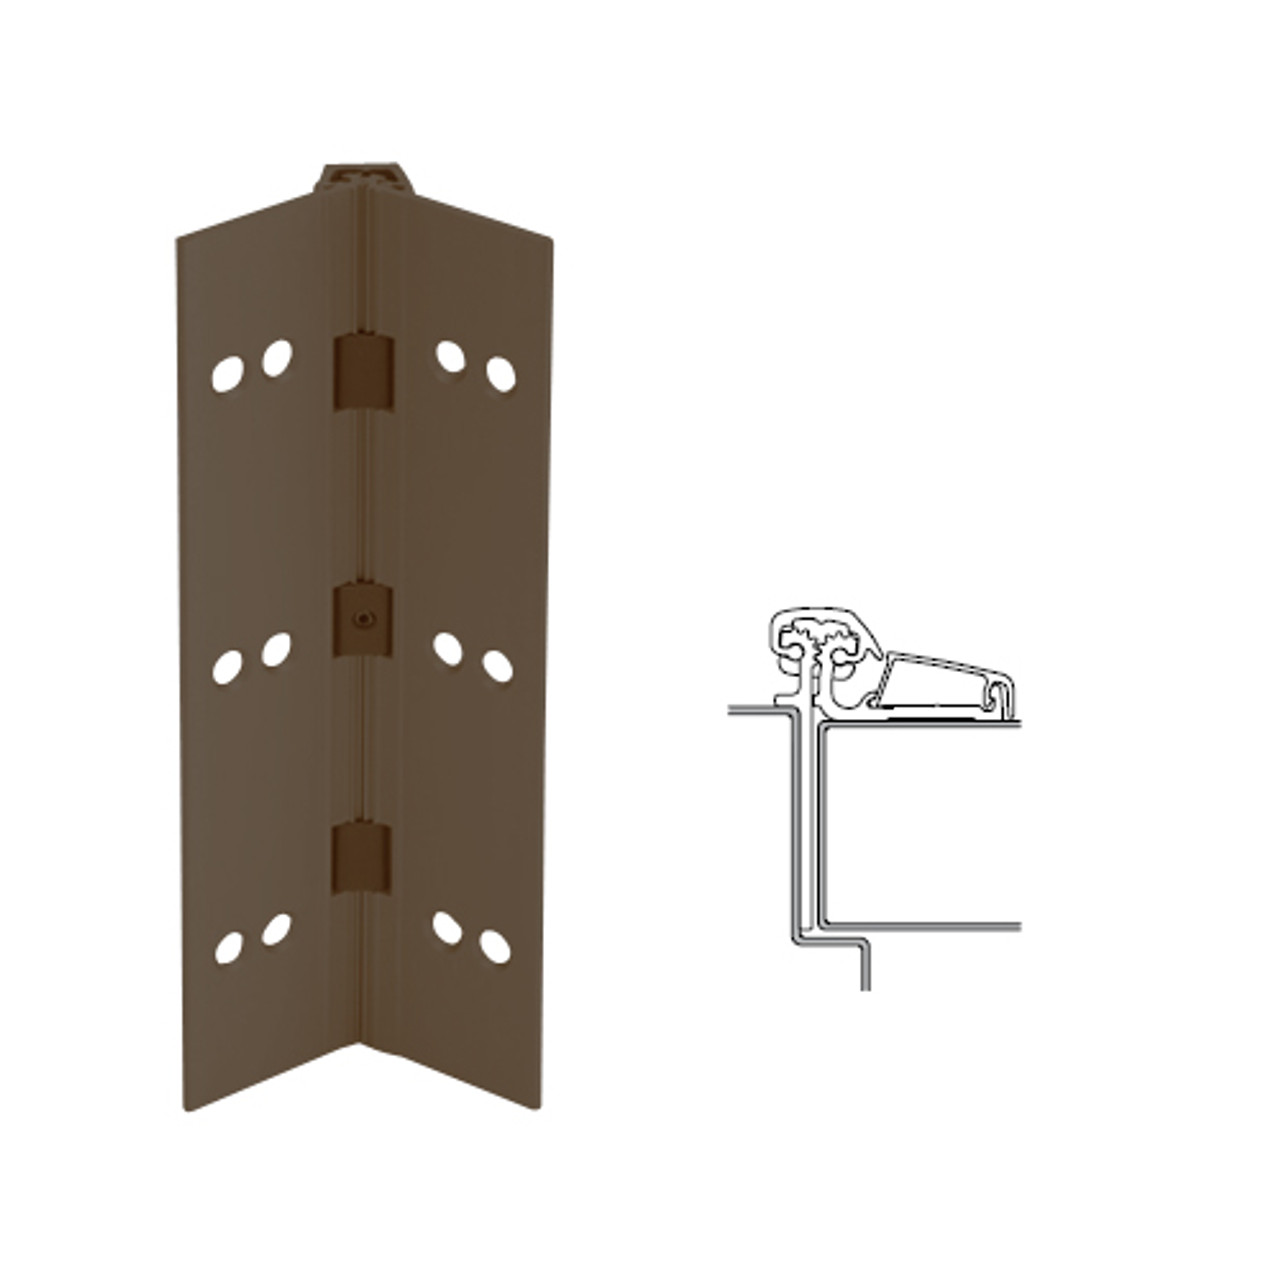 054XY-313AN-95-SECHM IVES Adjustable Half Surface Continuous Geared Hinges with Security Screws - Hex Pin Drive in Dark Bronze Anodized